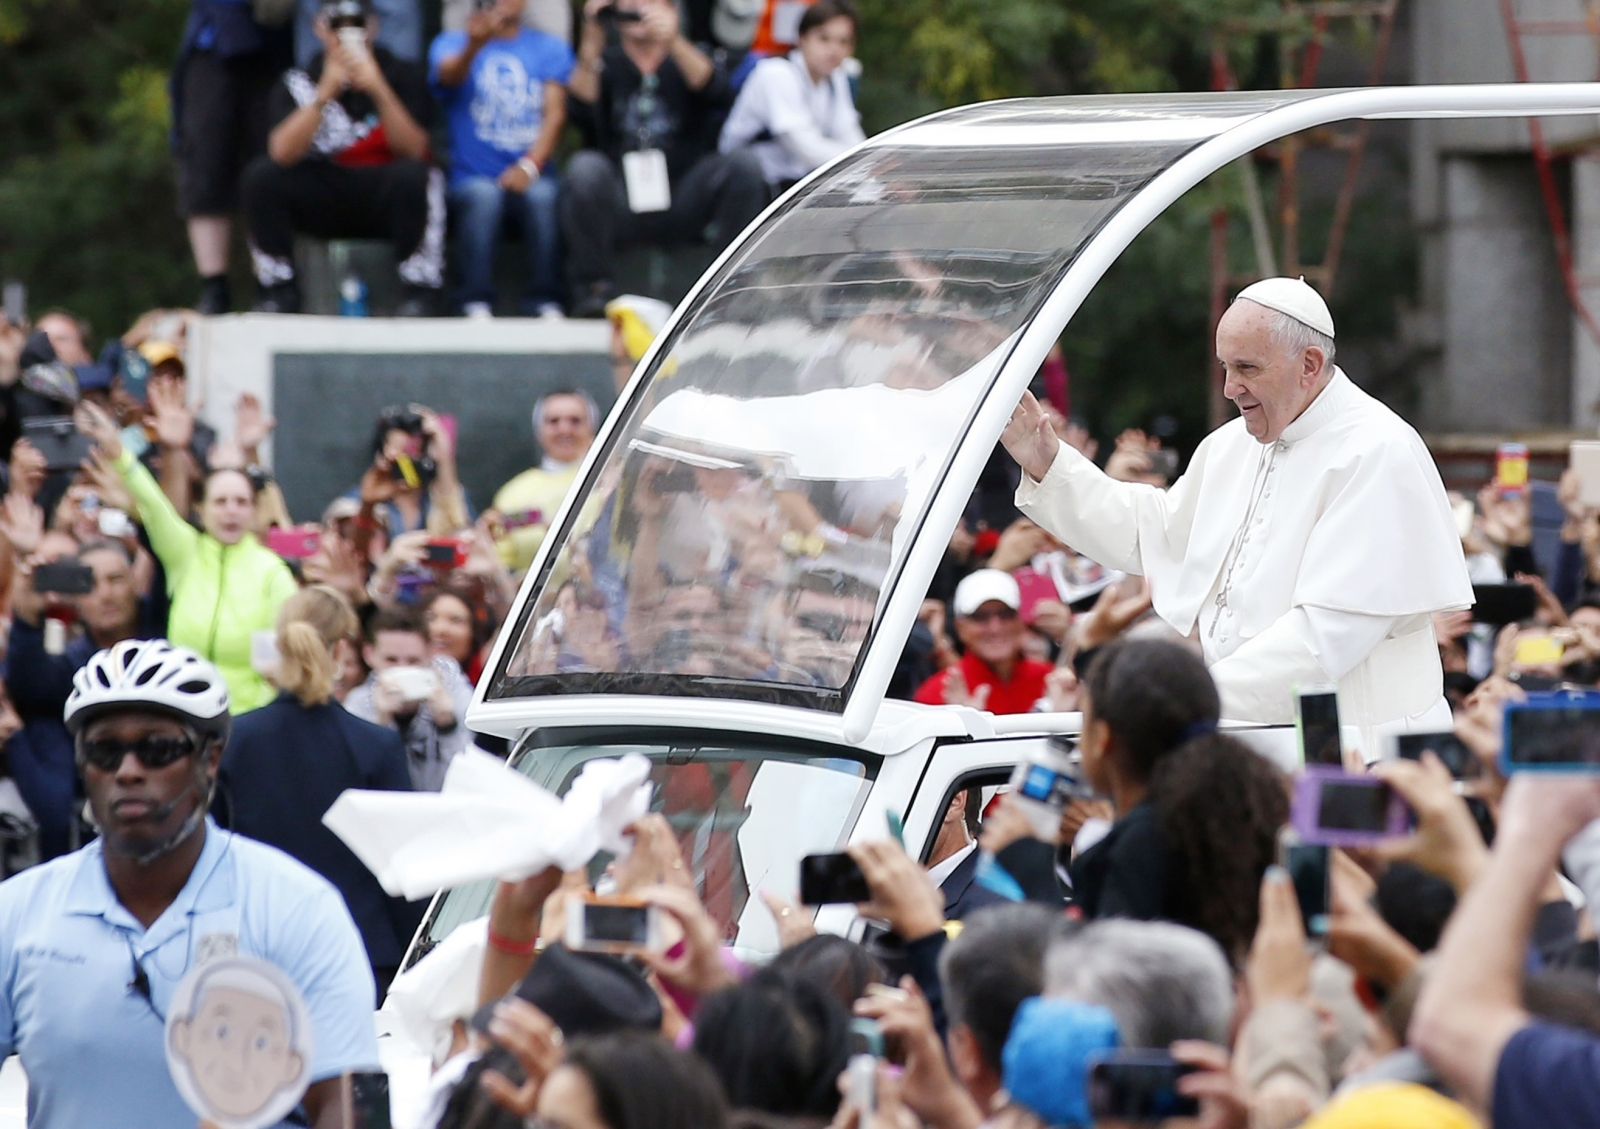 New Jersey teen pleads guilty in plot to assassinate the Pope